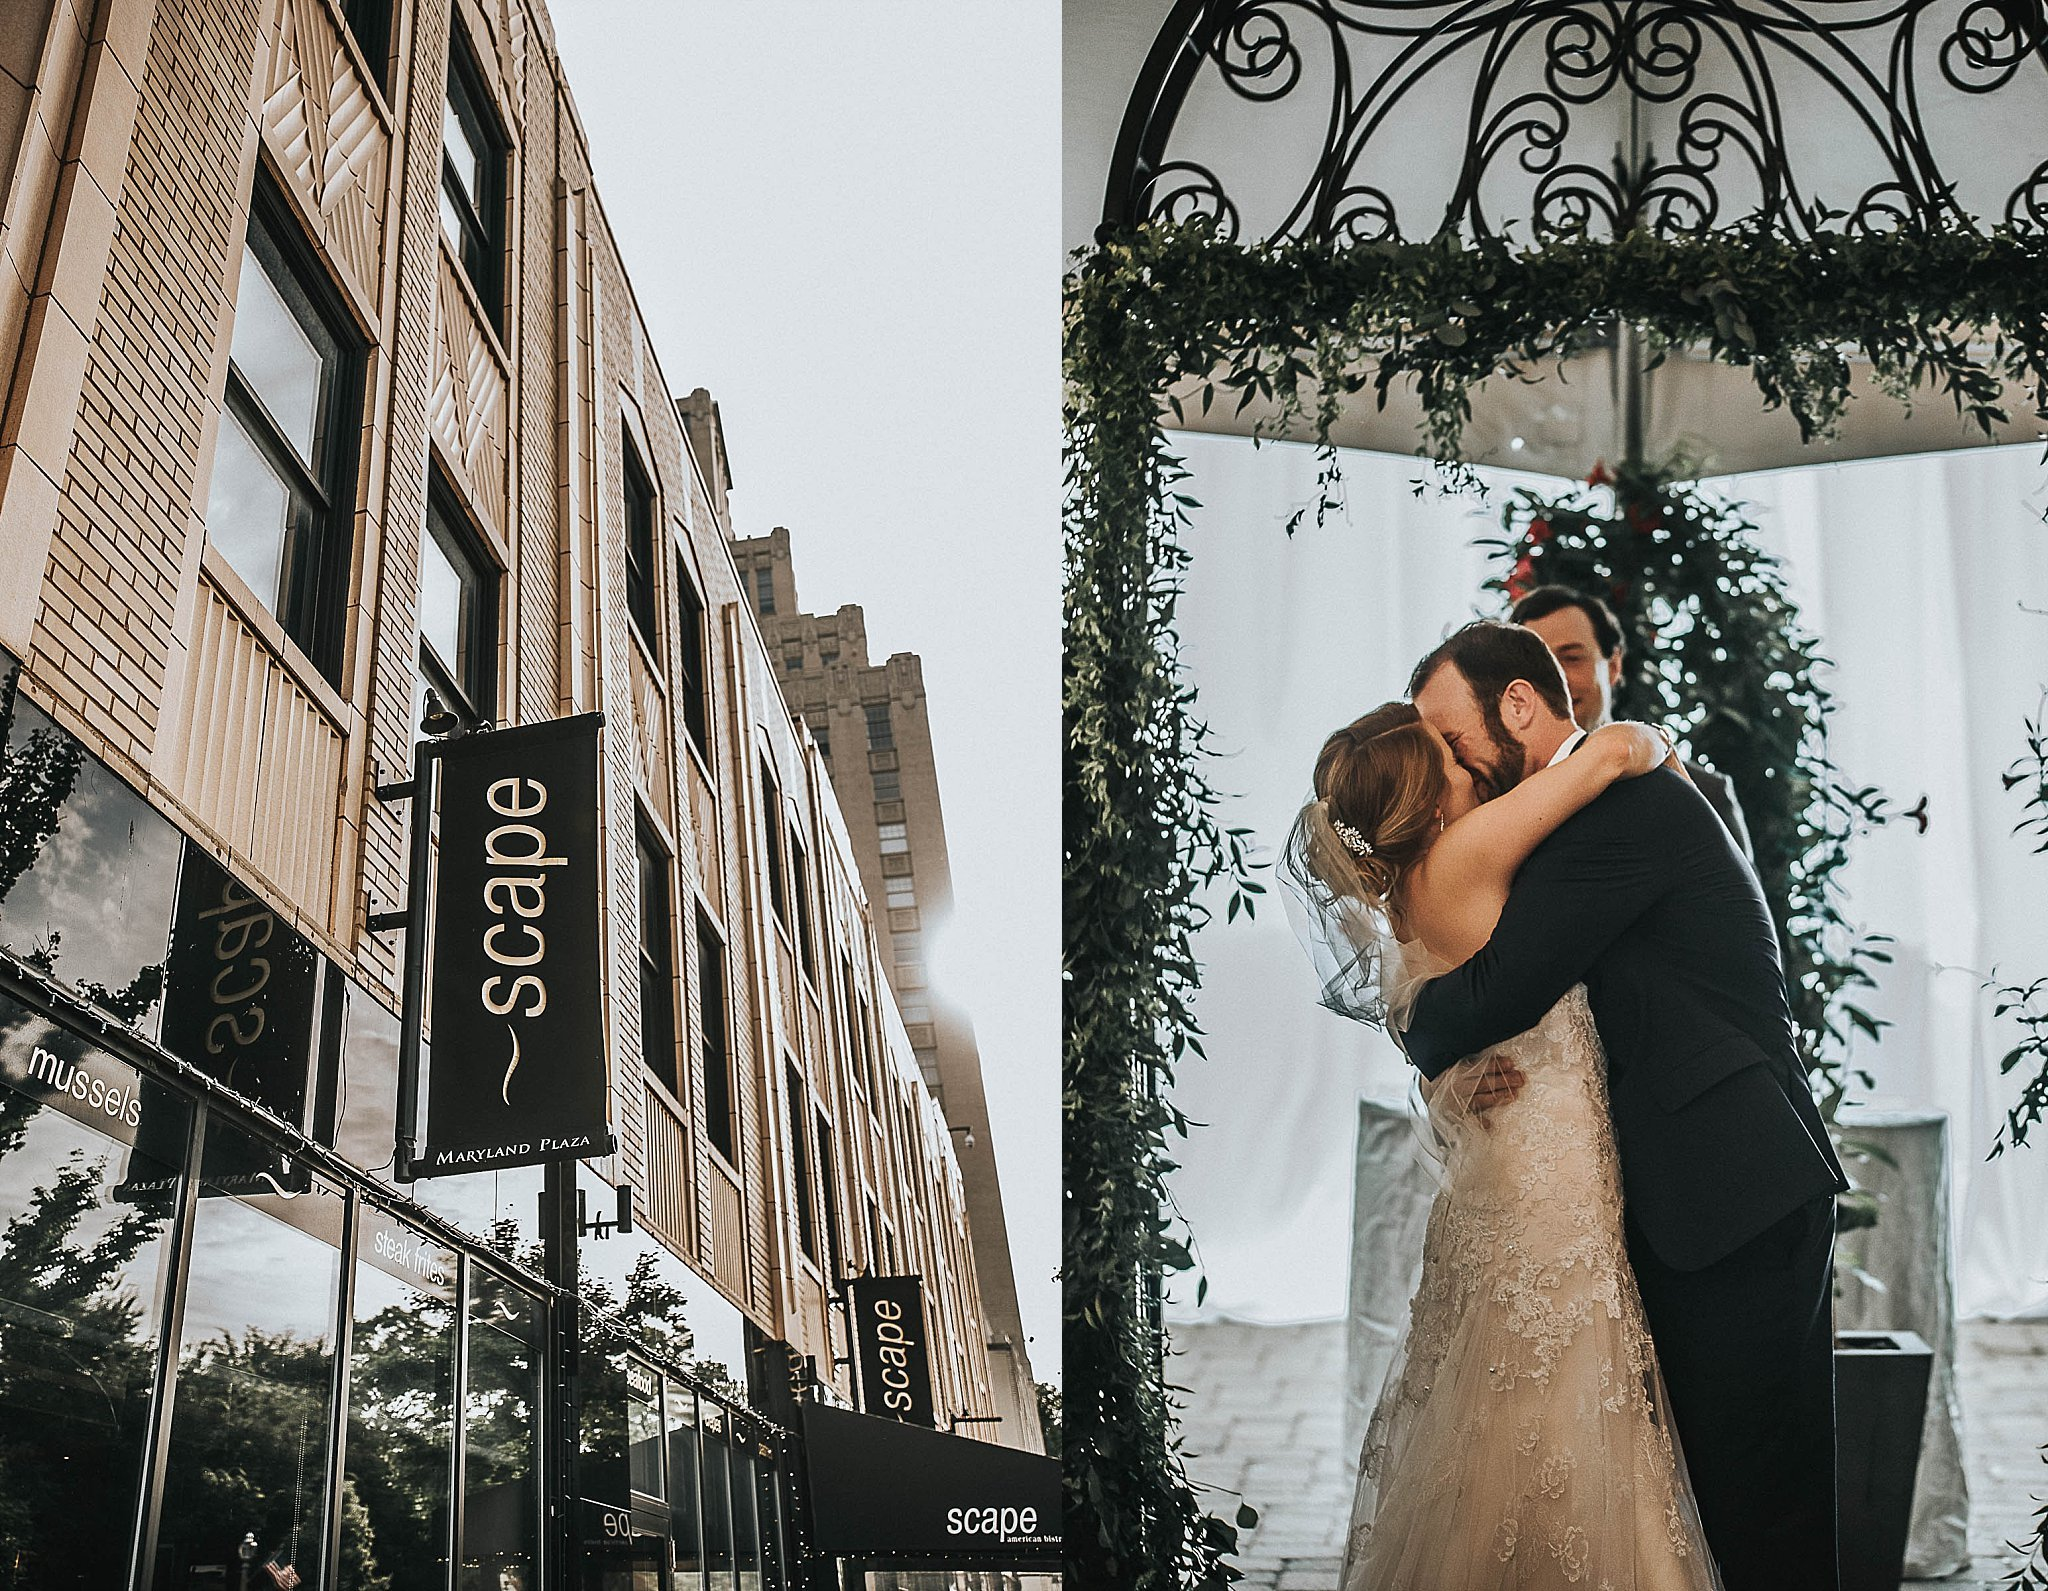 Scape St. Louis Weddings